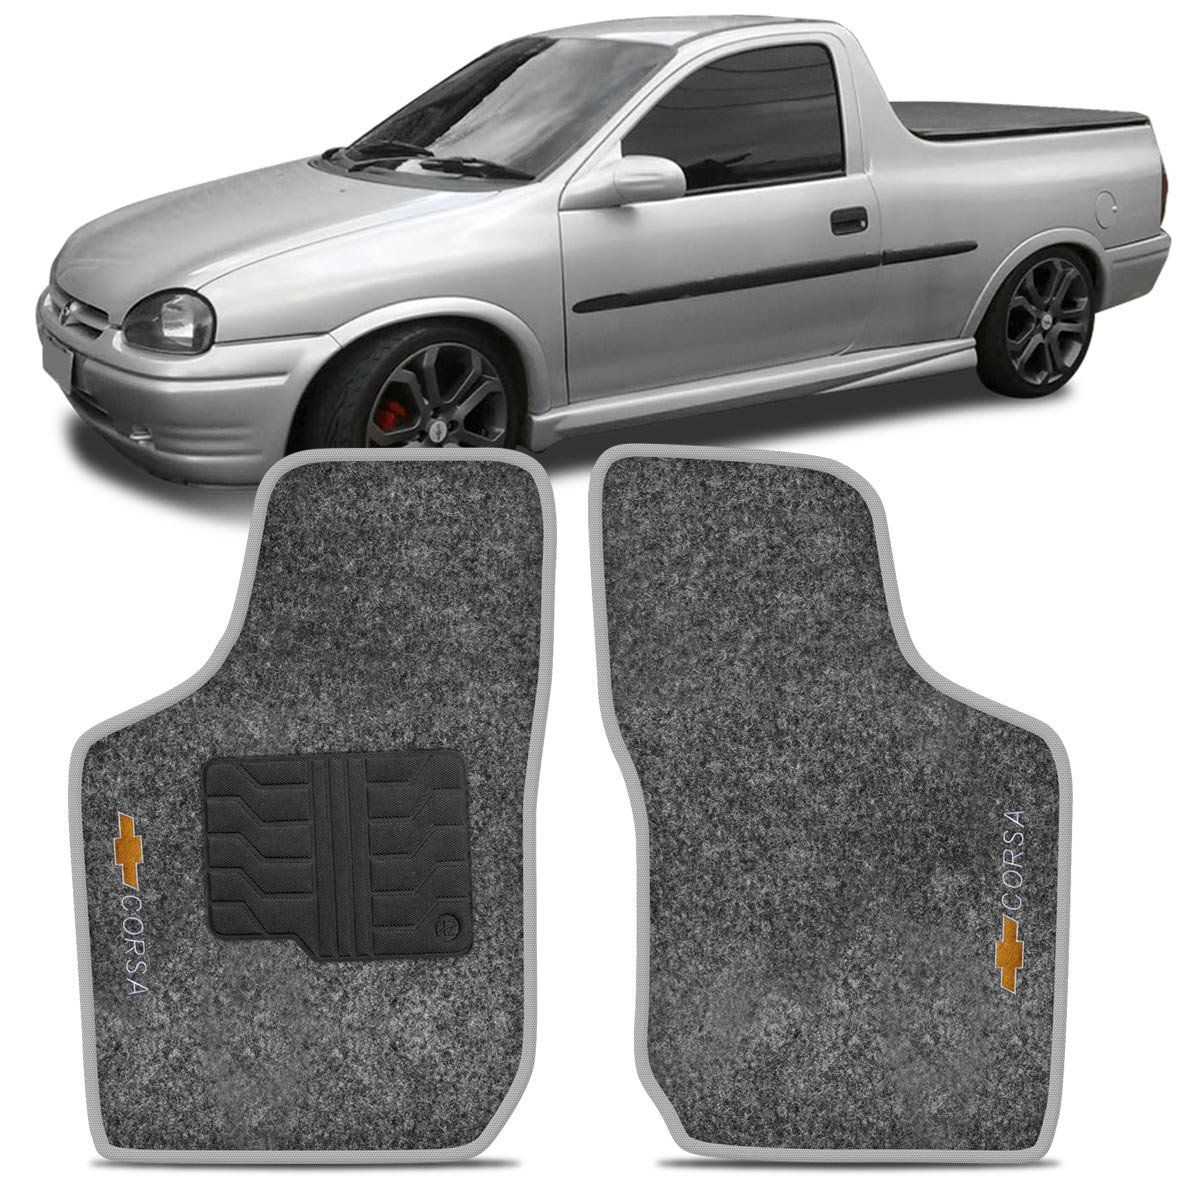 Tapete Carpete Pick'UP Corsa 95 96 97 98 99 2000 2001 2002 Grafite